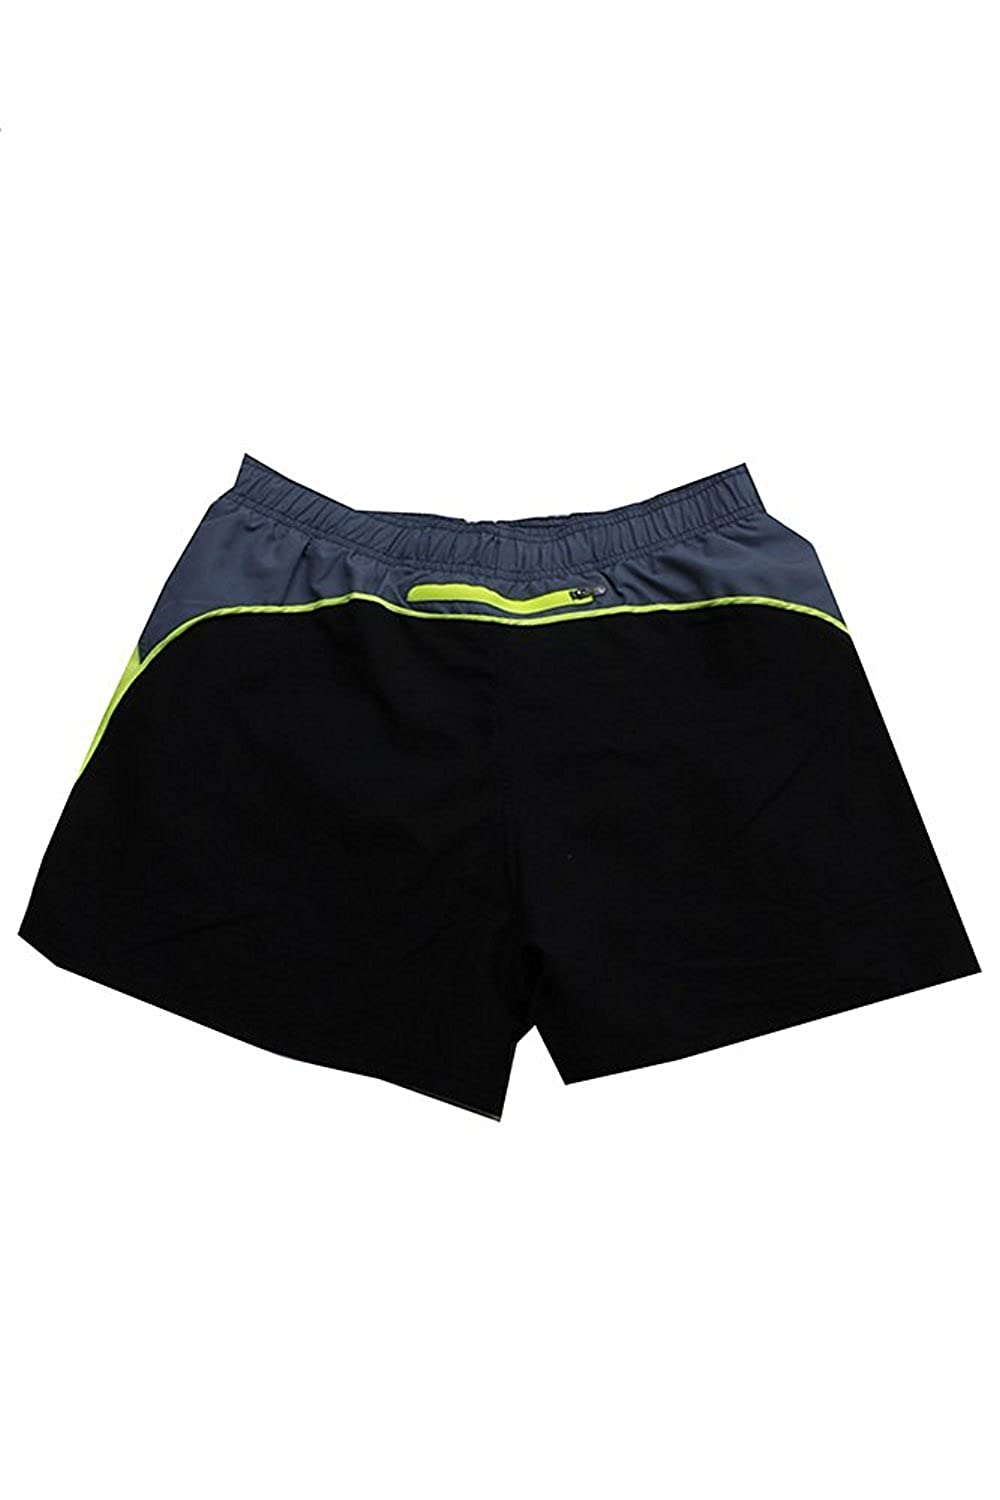 Nike Mens Current Volley Shorts